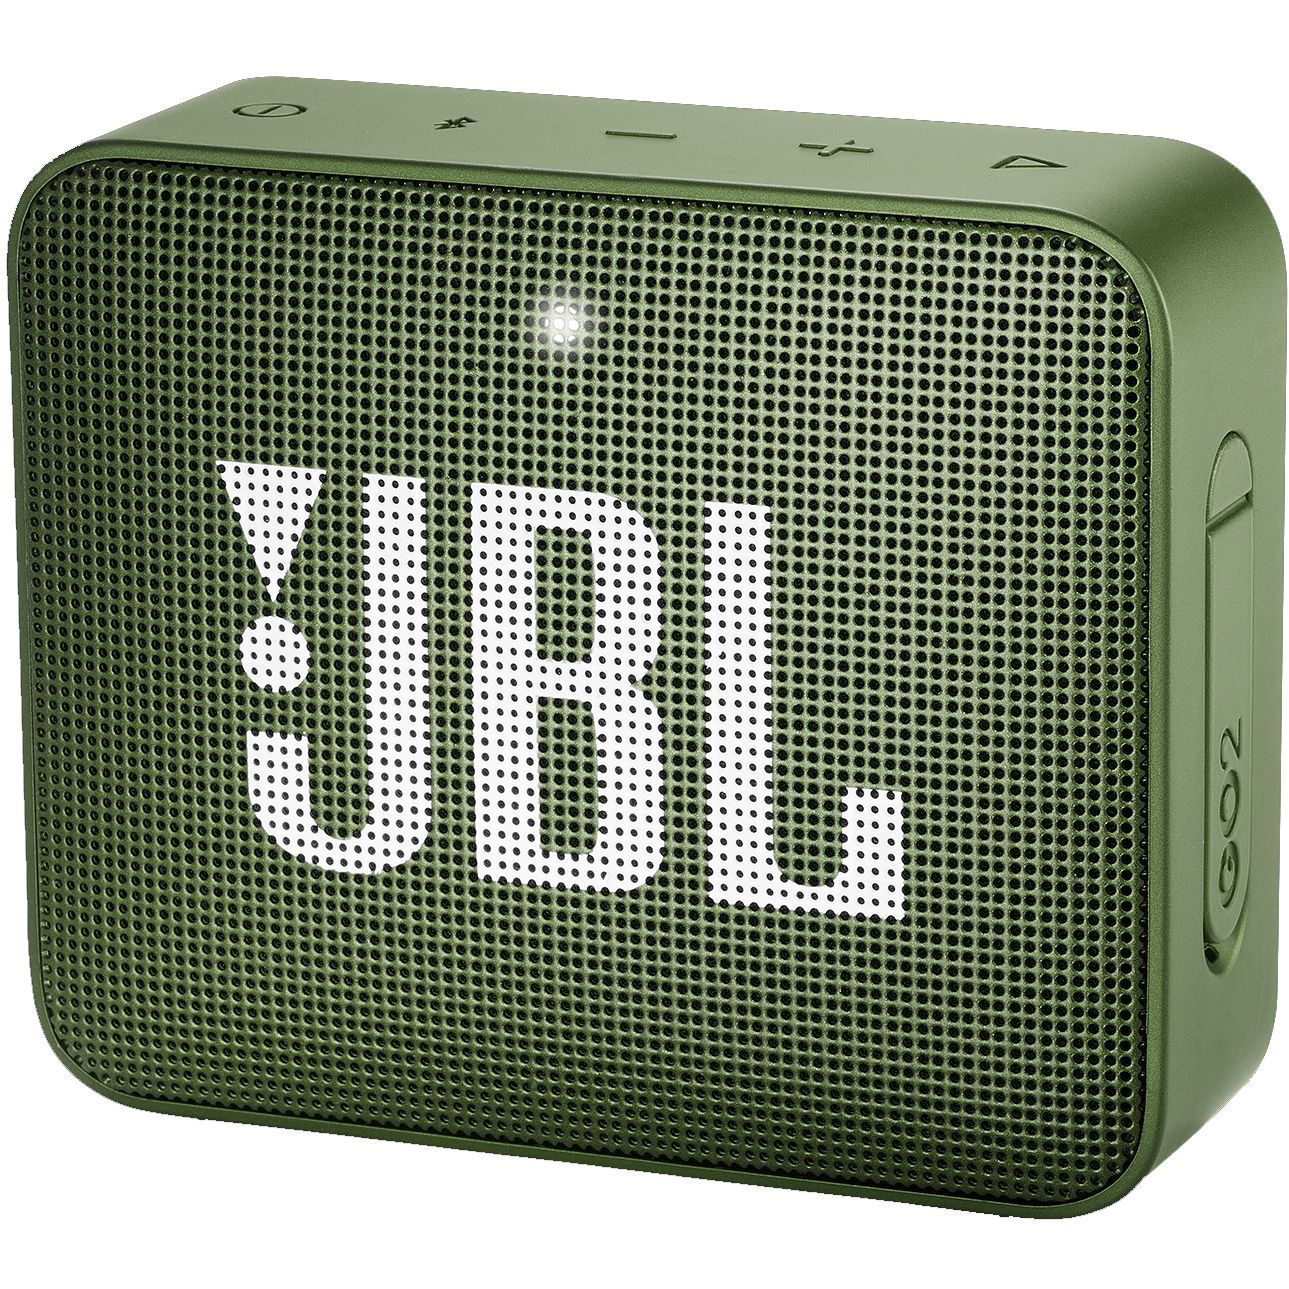 Boxa portabila JBL Go 2, Wireless, Bluetooth, IPX7 Waterproof, Moss Green